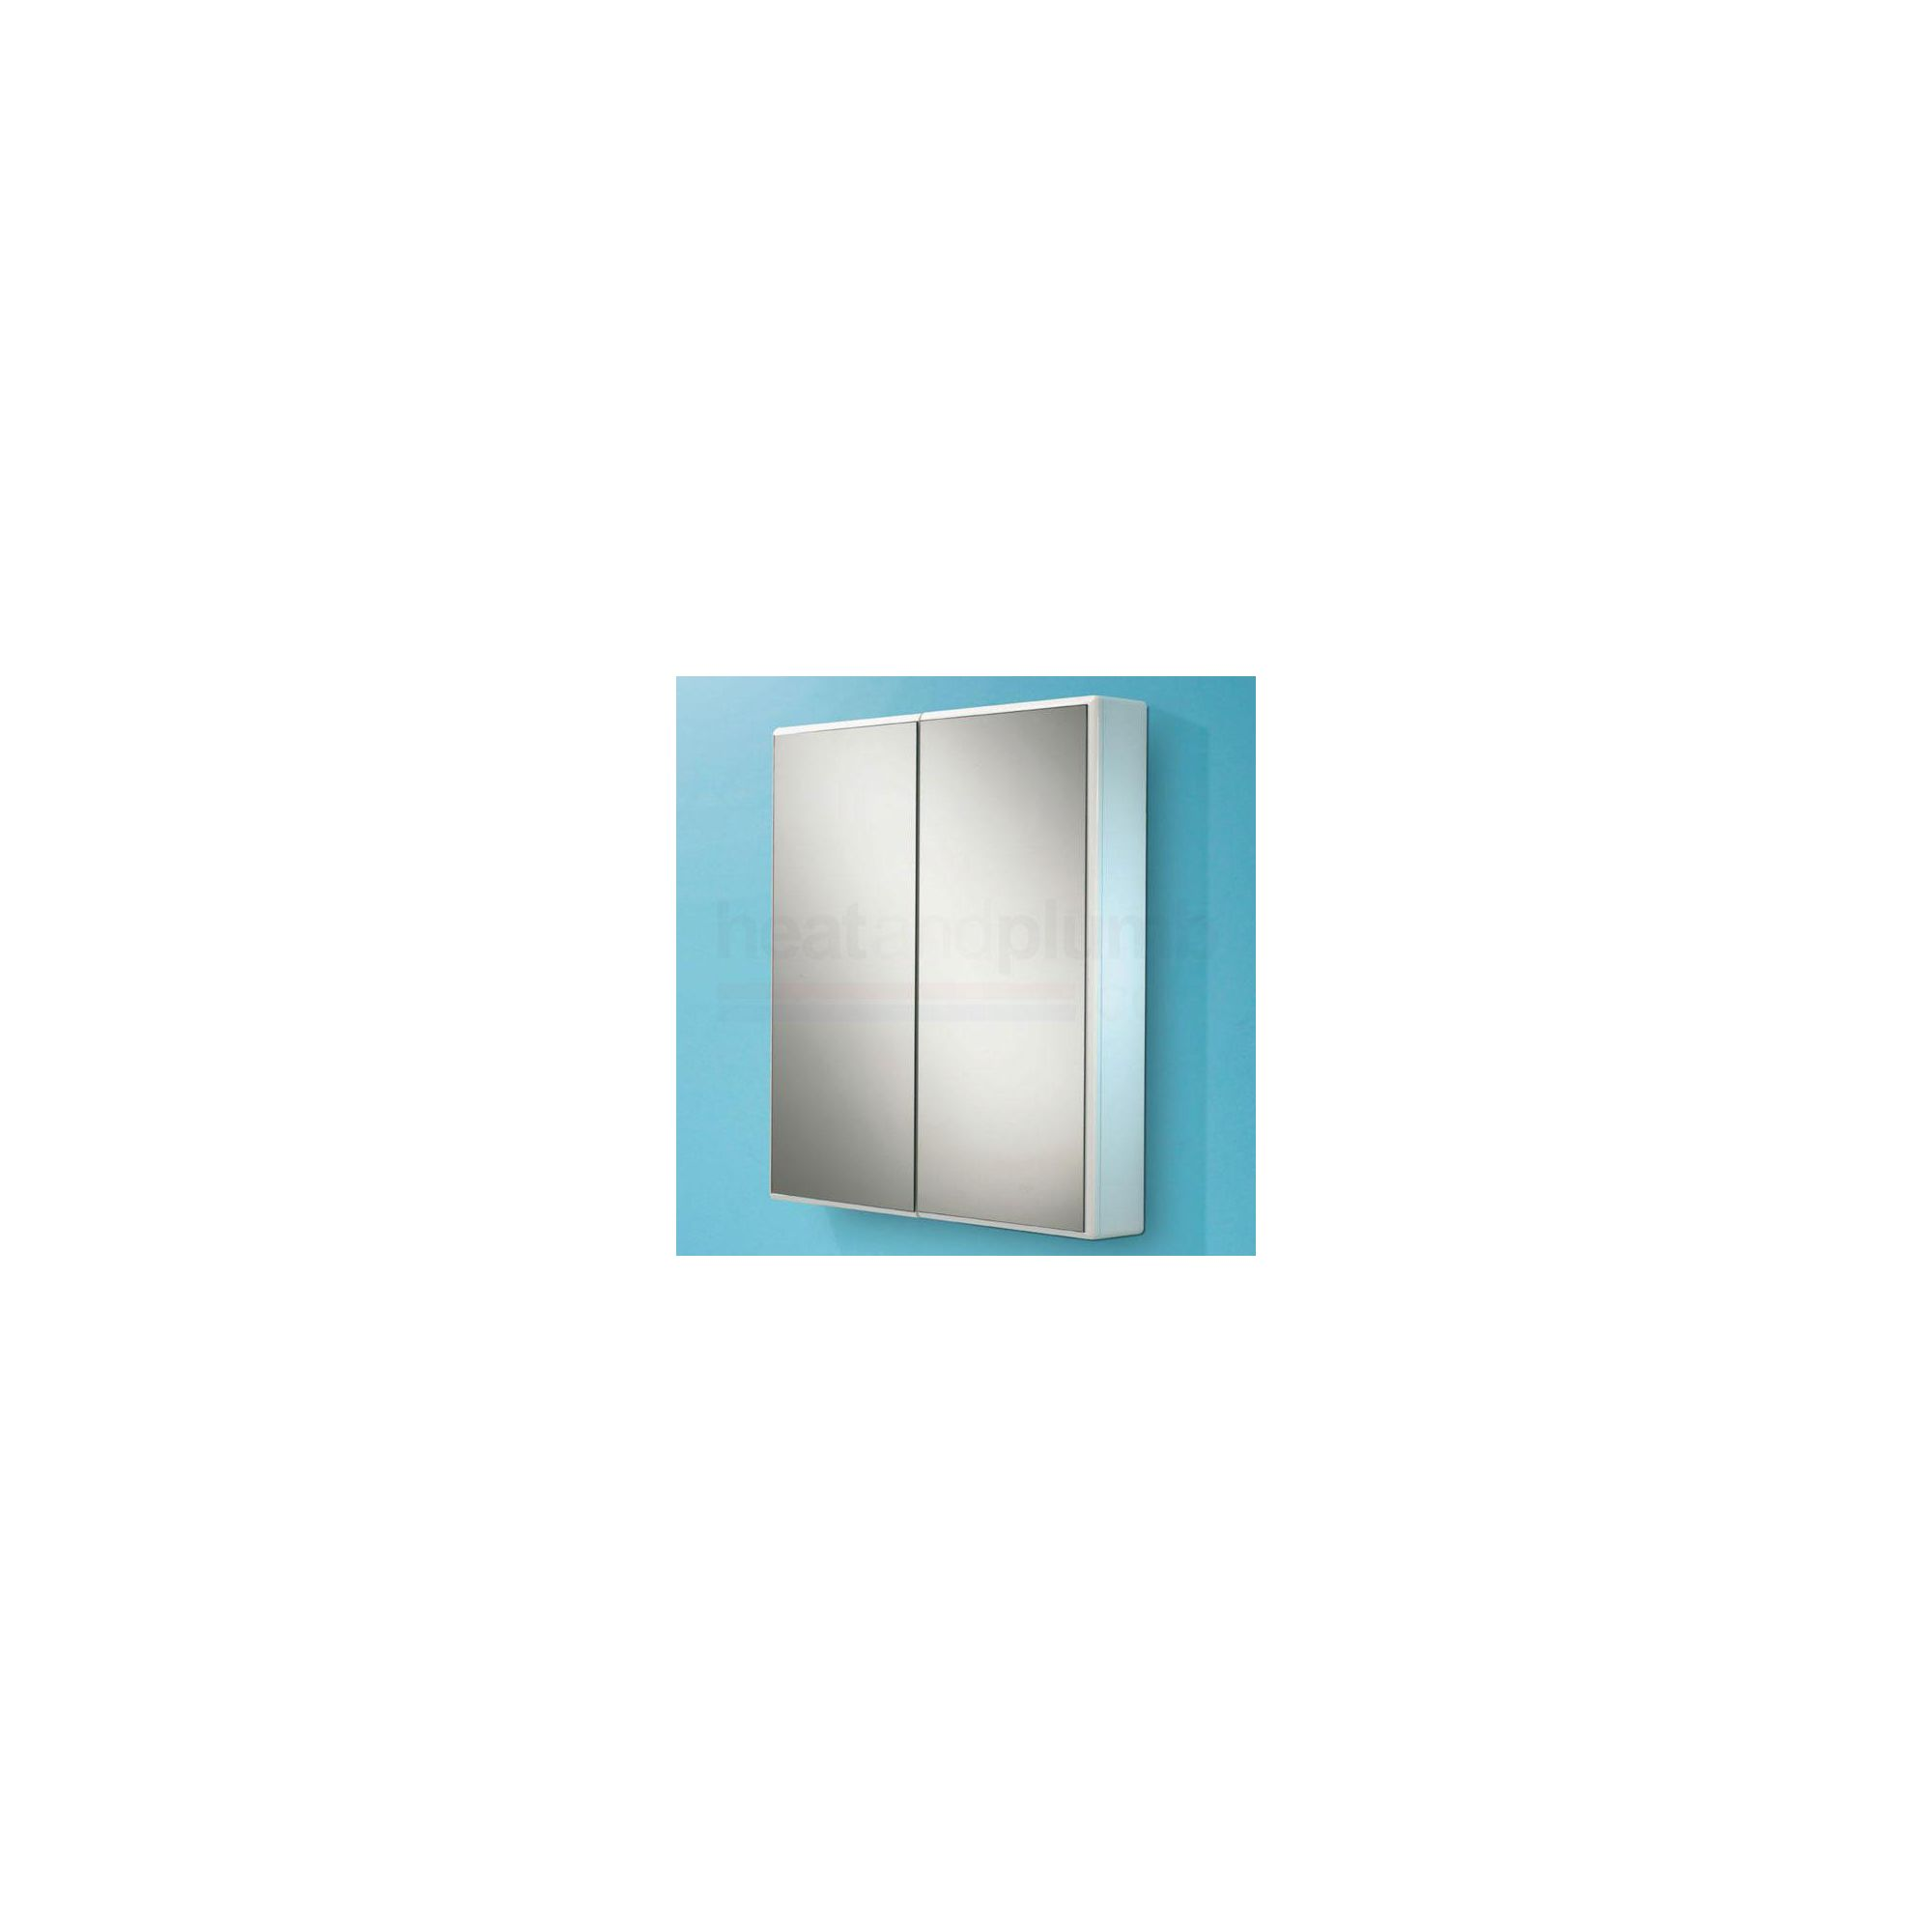 HiB Jersey Mirrored Bathroom Cabinet 700mm High x 650mm Wide x 100mm Deep